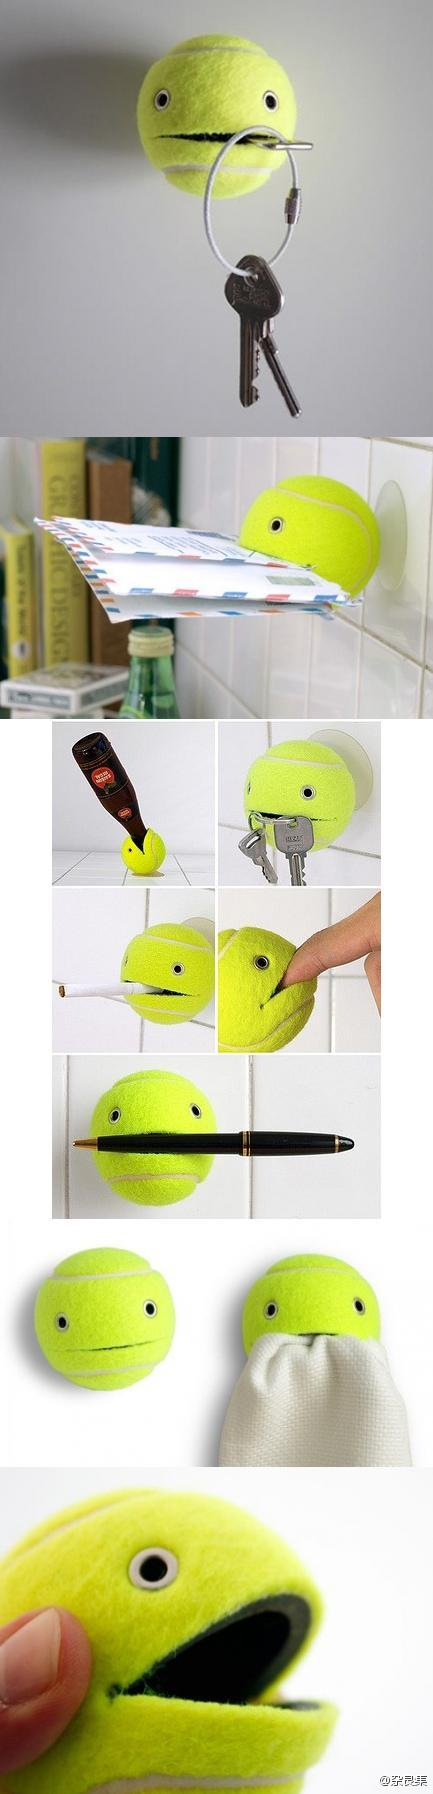 tennis_ball_helper.jpg